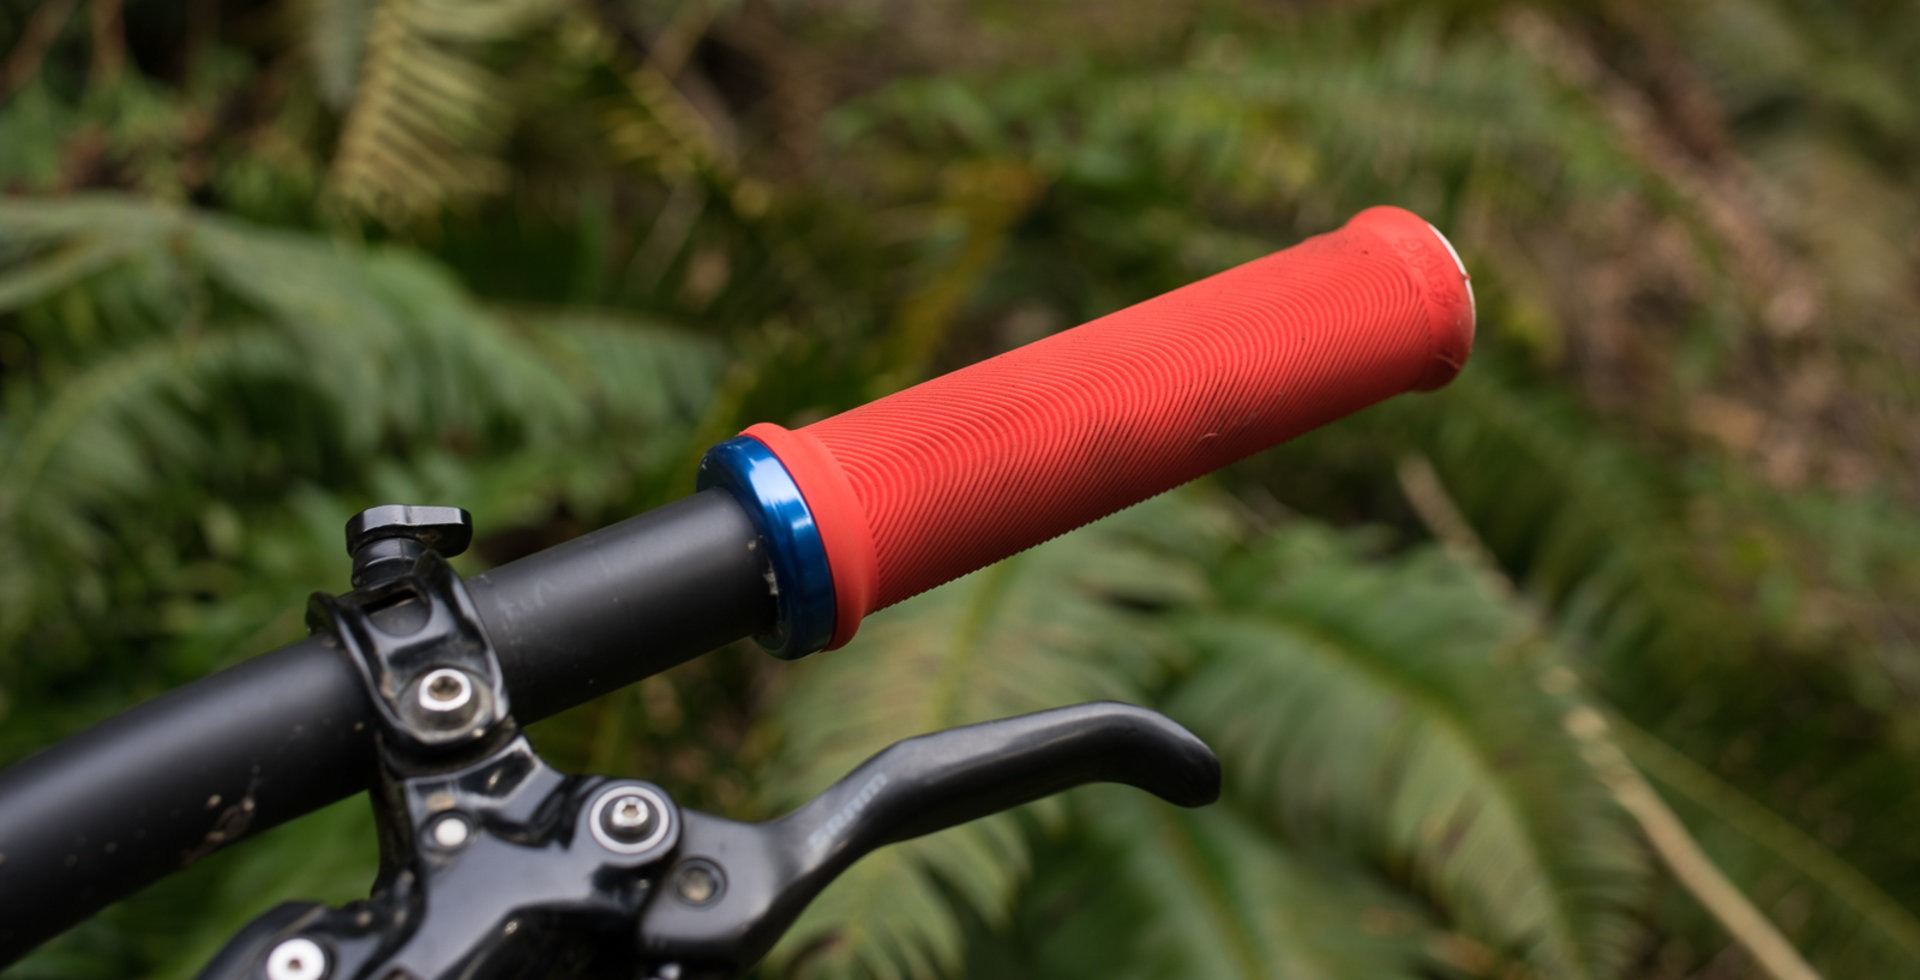 The Lites are Sensus' newest and most minimal grip, but with the same proven design and pattern.